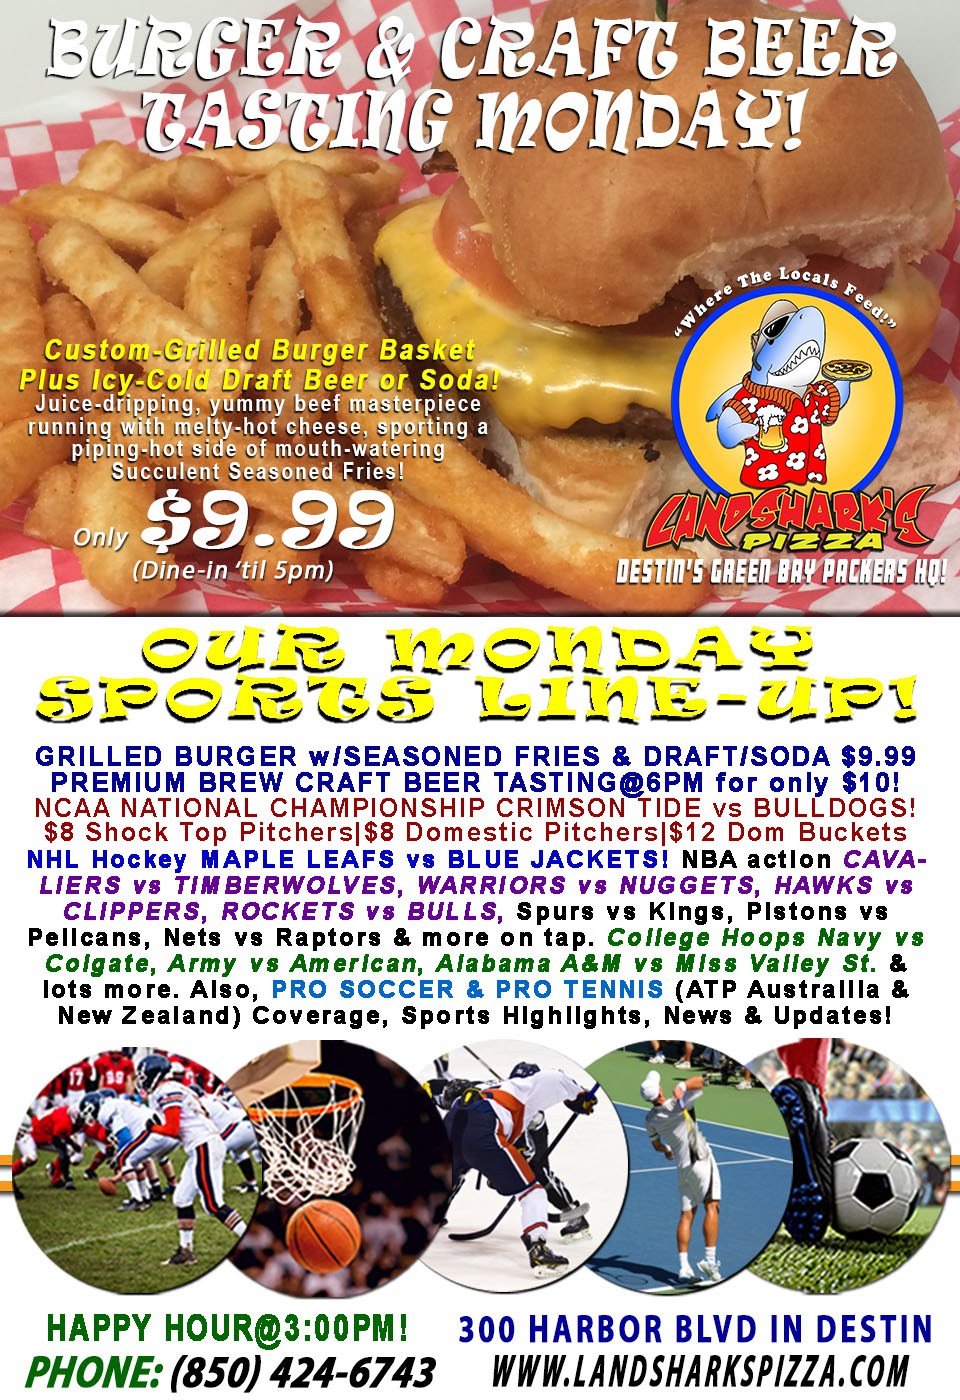 NATIONAL CHAMPIONSHIP Burger & Brew Monday CRIMSON TIDE vs BULLDOGS Specials All Day|BEER TASTING@6PM!